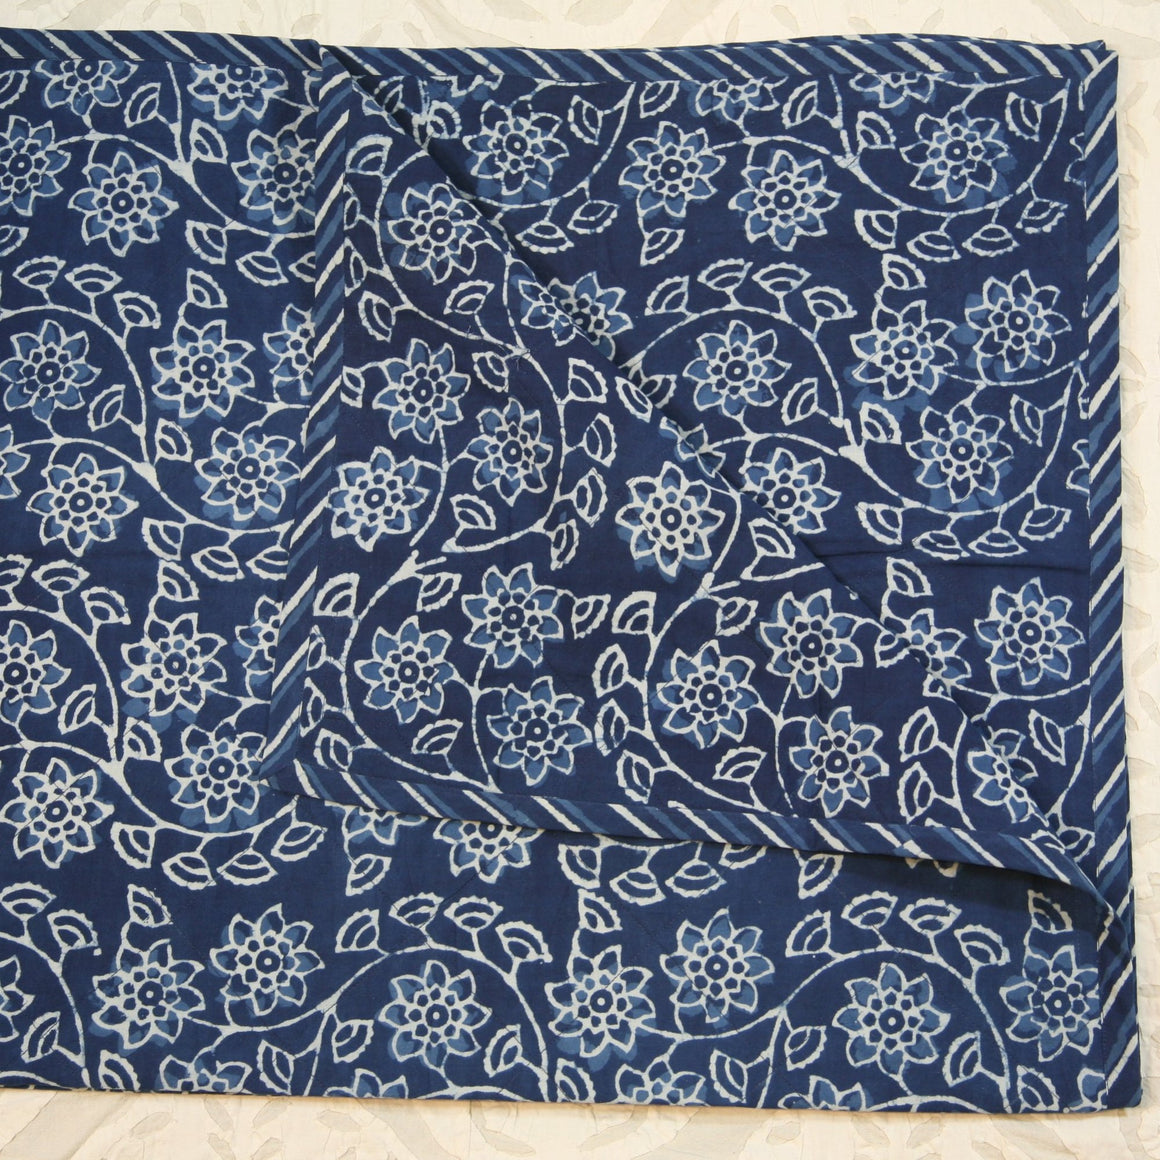 Quilted Couch Throw in Hand Block Indigo Jaal Print